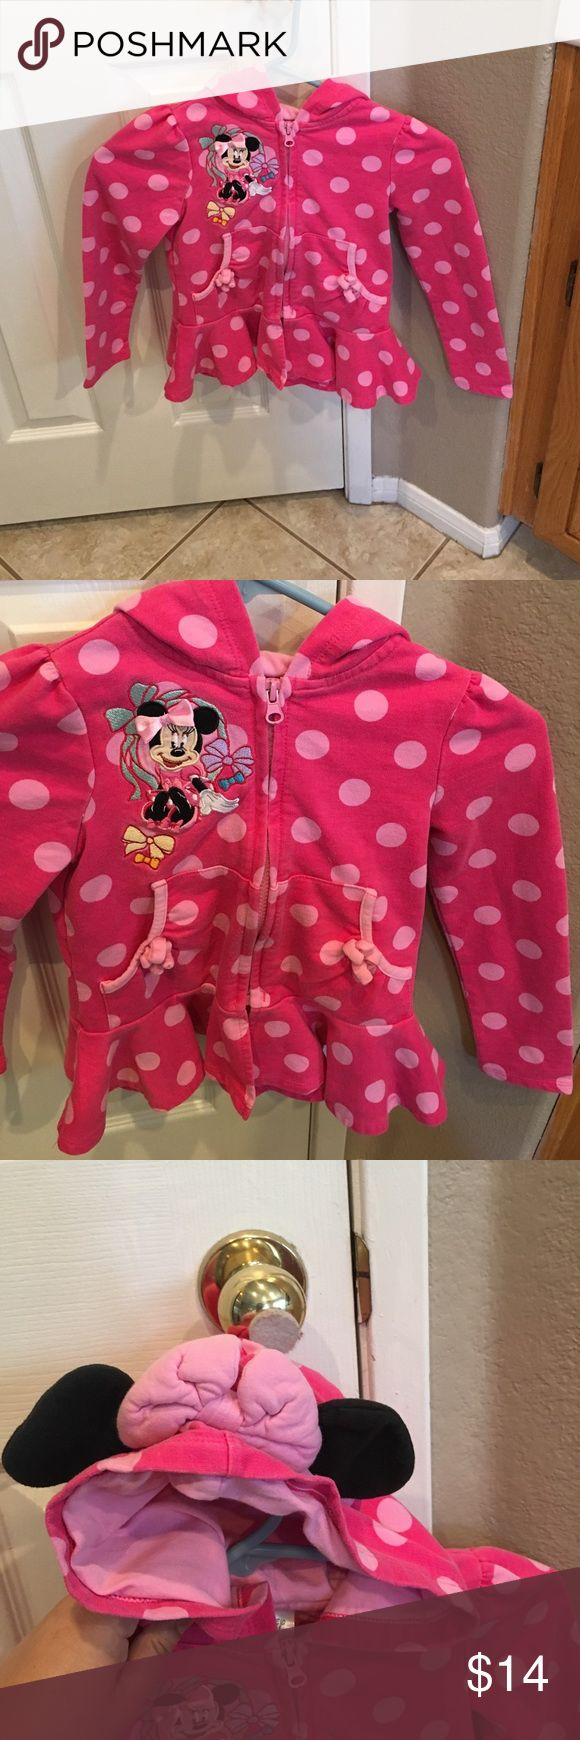 Minnie Mouse Jacket Polka dot zip up with Minnie Mouse graphics. The hood had ears and a bow attached. Great shape Disney Shirts & Tops Sweatshirts & Hoodies